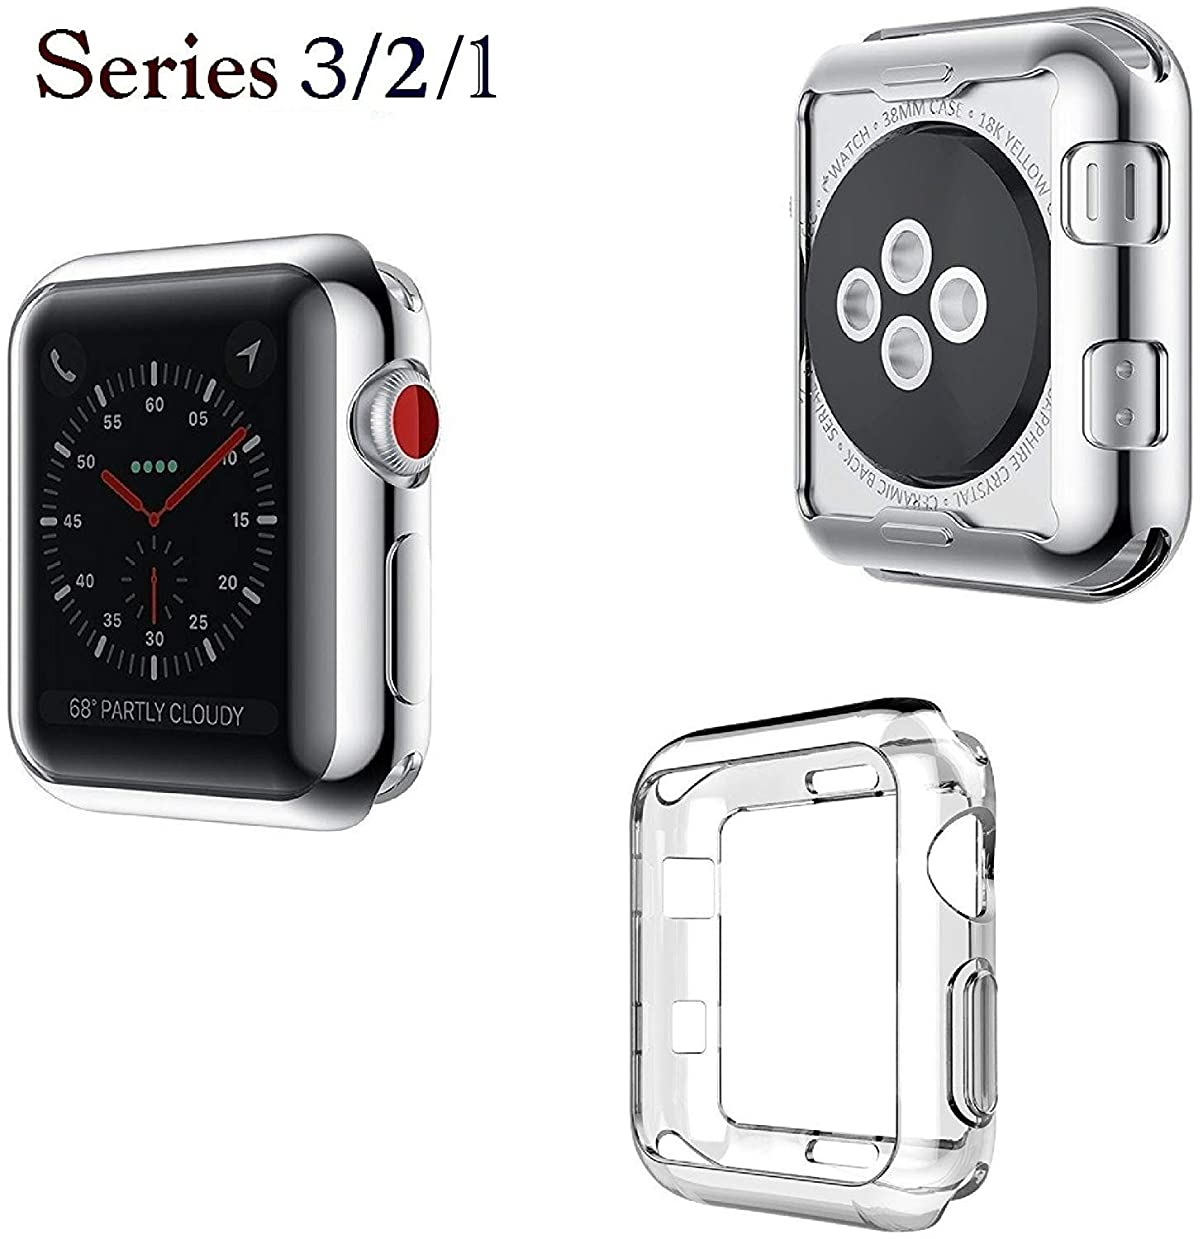 Josi Minea Apple Watch [42mm] Protective Snap-On Shell Bumper Case - Premium Anti-Scratch & Shockproof Ultra Thin TPU Silicone HD Cover Shield Guard for Apple Watch Series 3, 2 & 1-42mm [ Clear ]